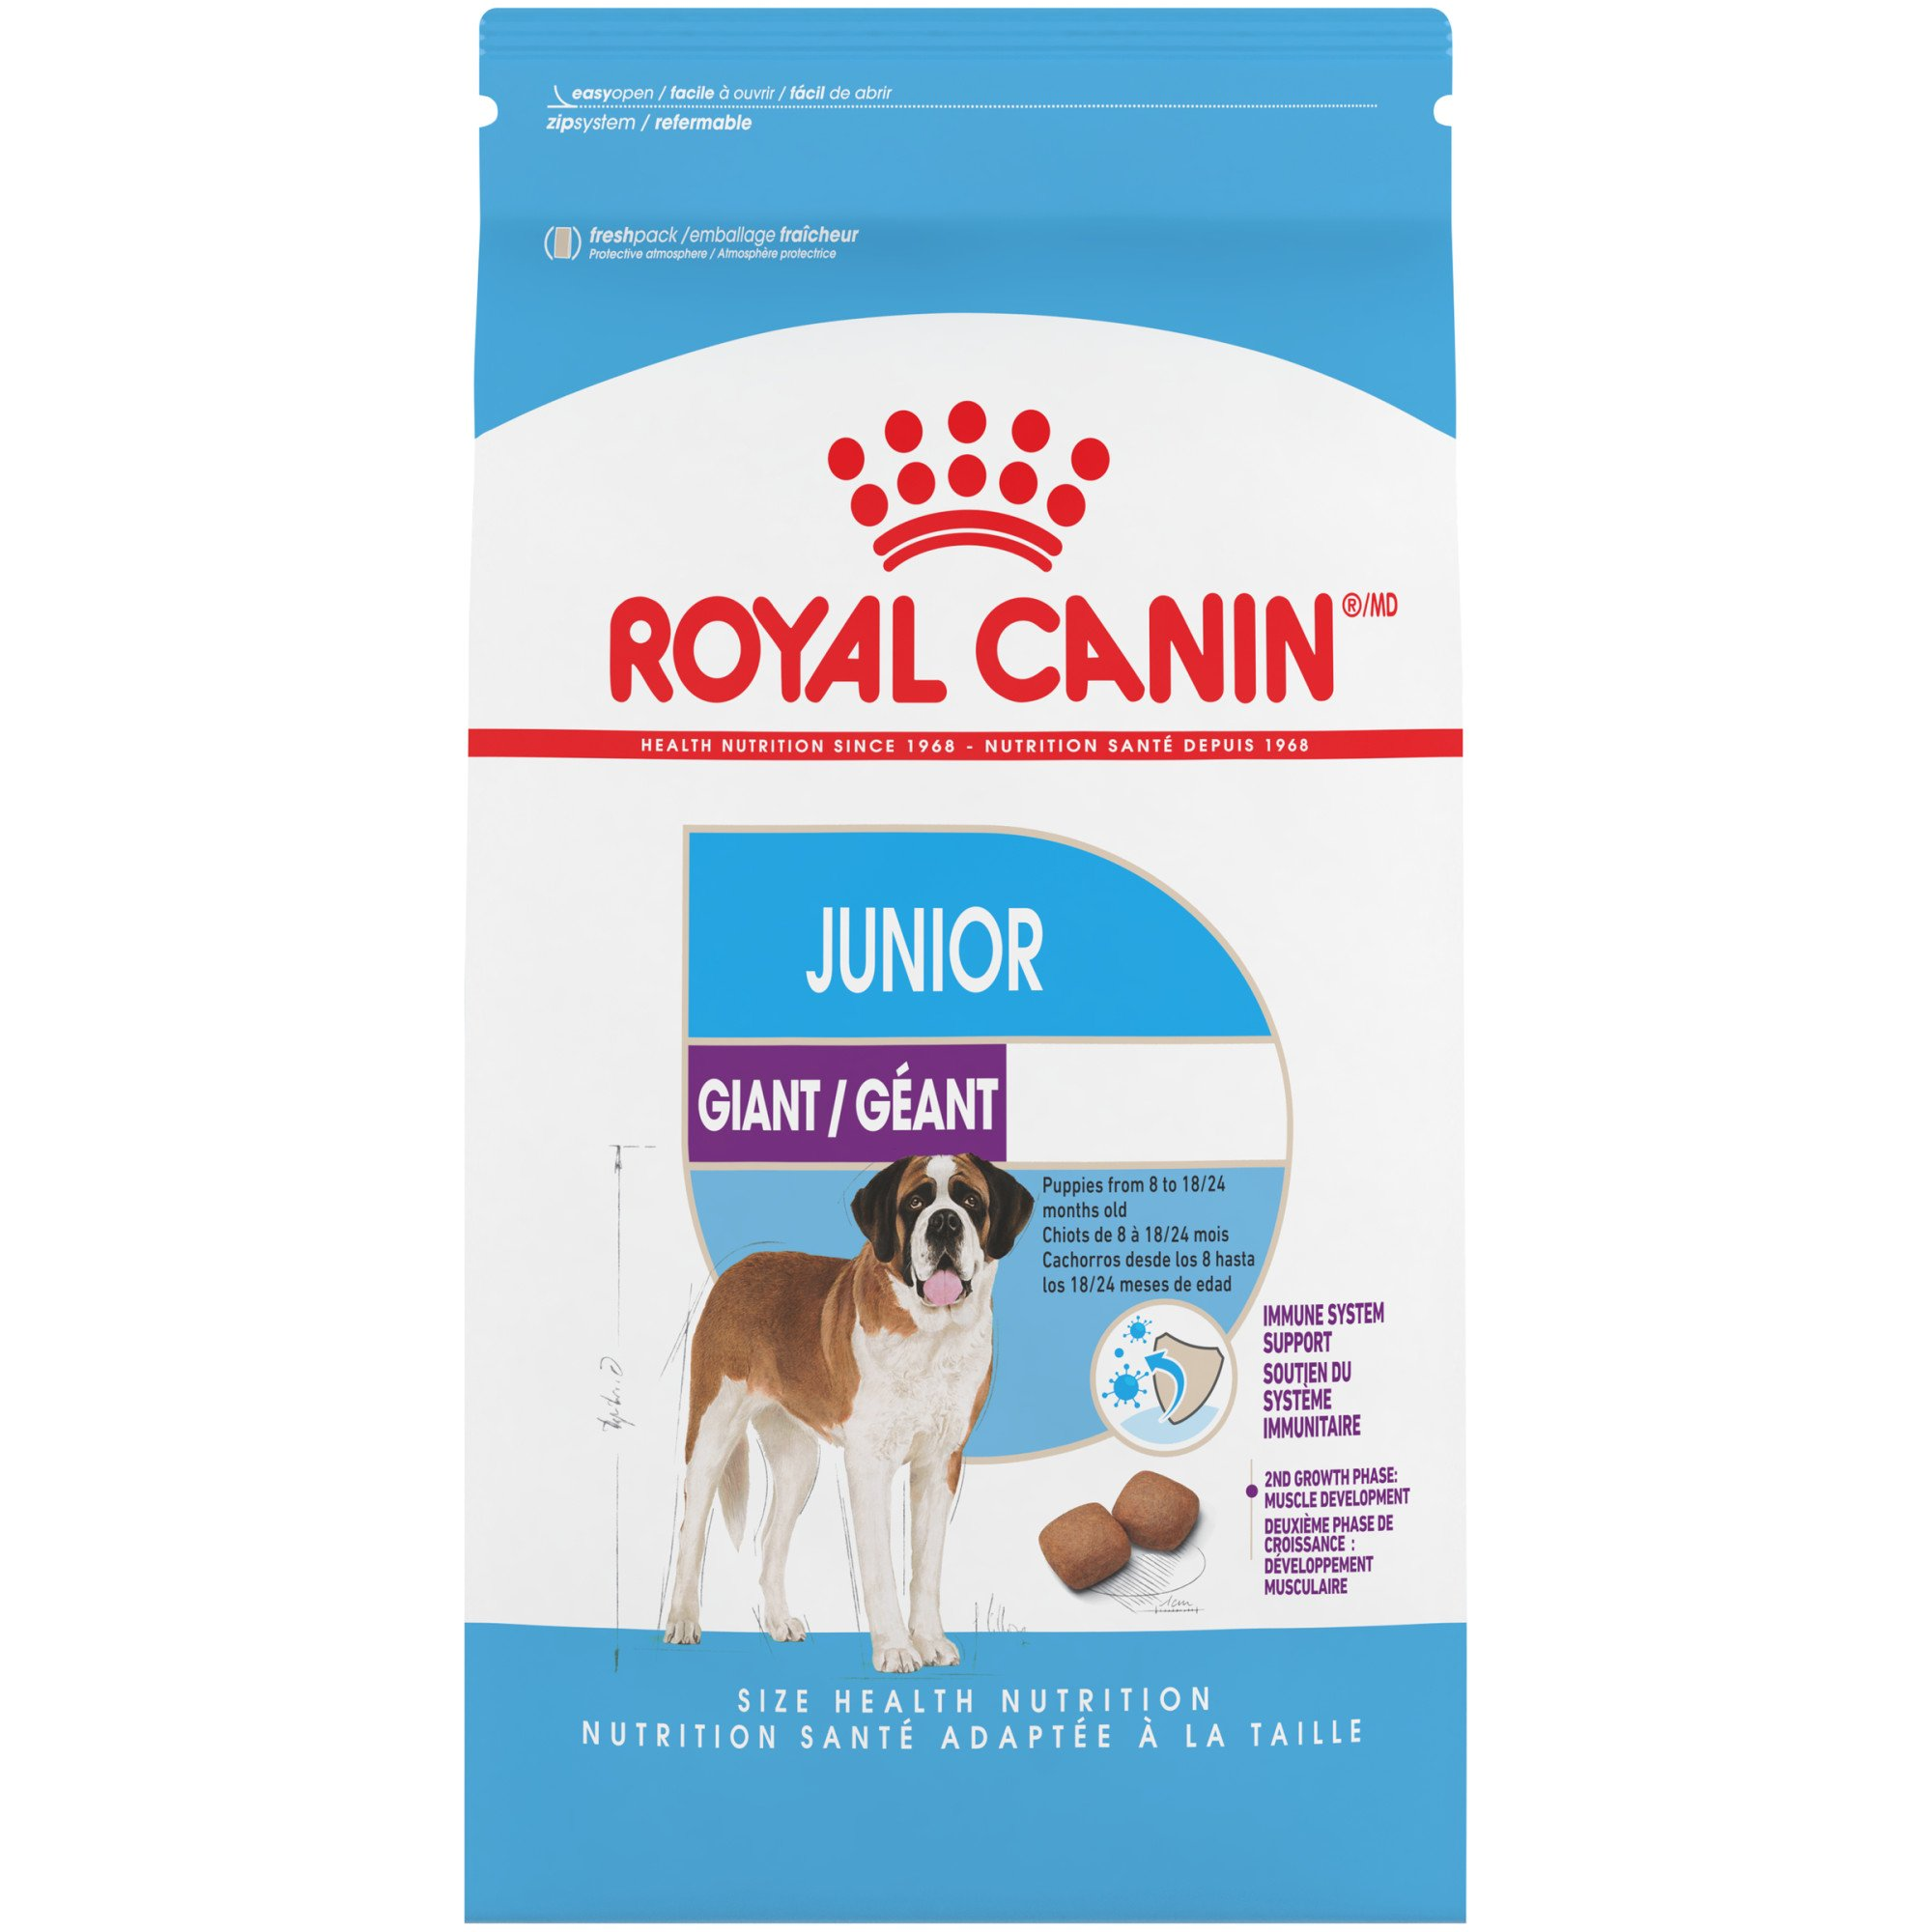 Royal Canin Giant Junior Dry Puppy Food, 30 lbs.